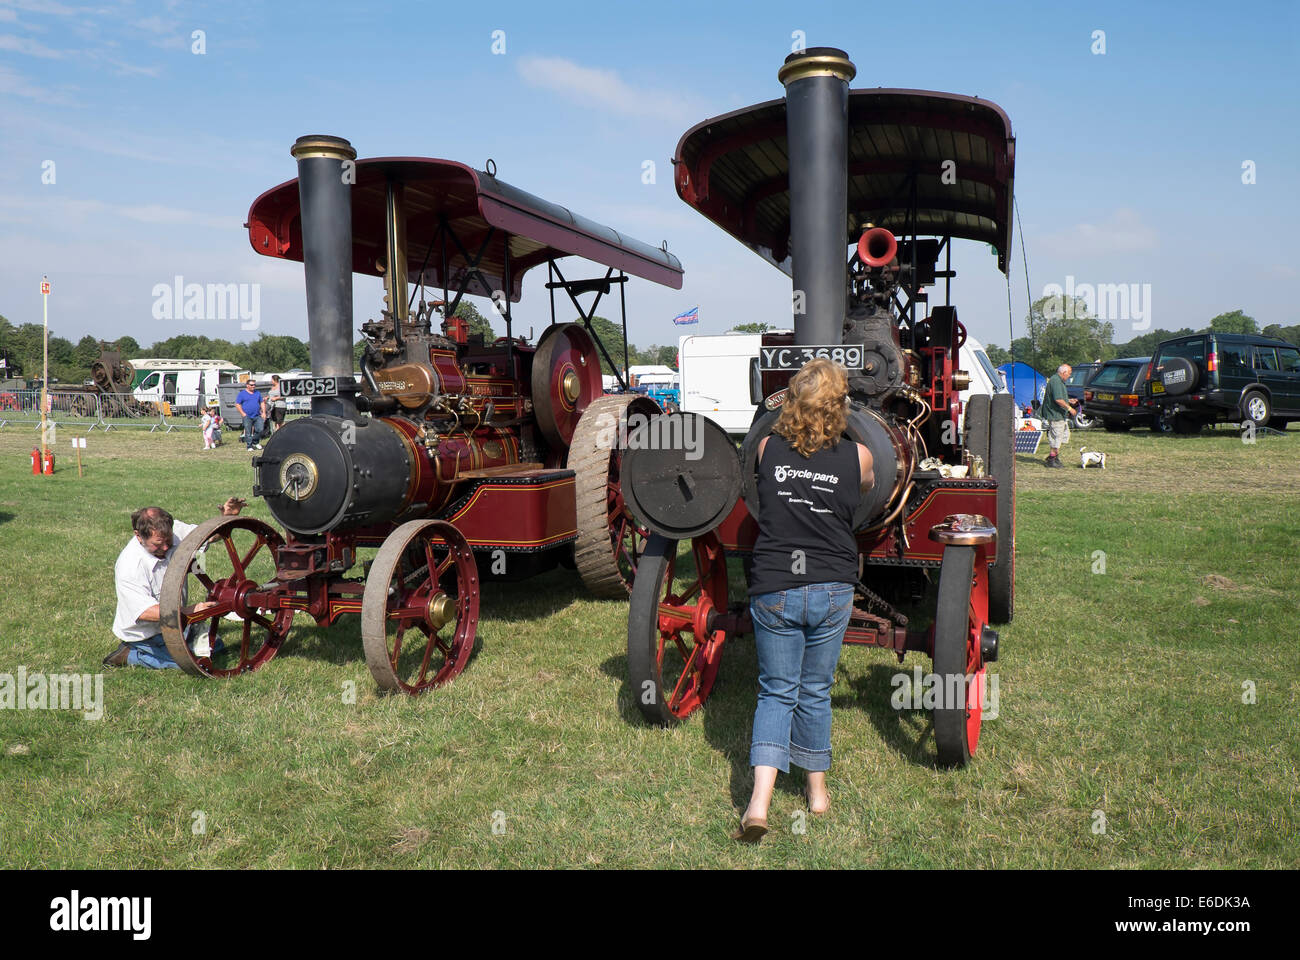 Two John Fowler steam engines being prepared for show at show ground for Cambridgeshire Steam Rally and Country Stock Photo